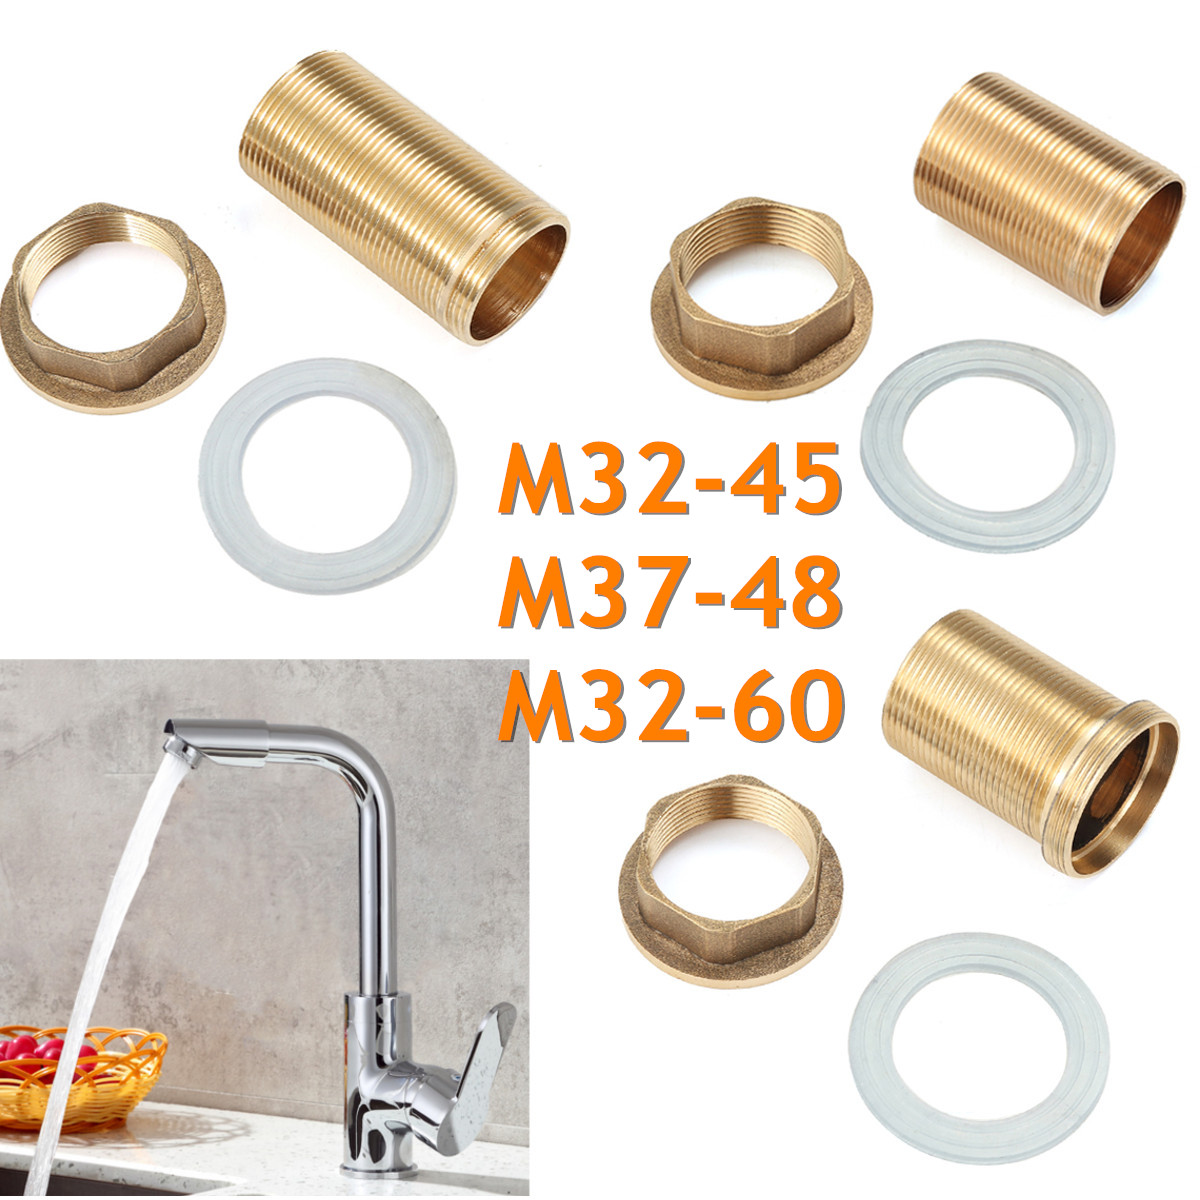 Kitchen Basin Mixer Tap Repair Fitting Kit Faucet Threaded Brass Tube Nut Parts